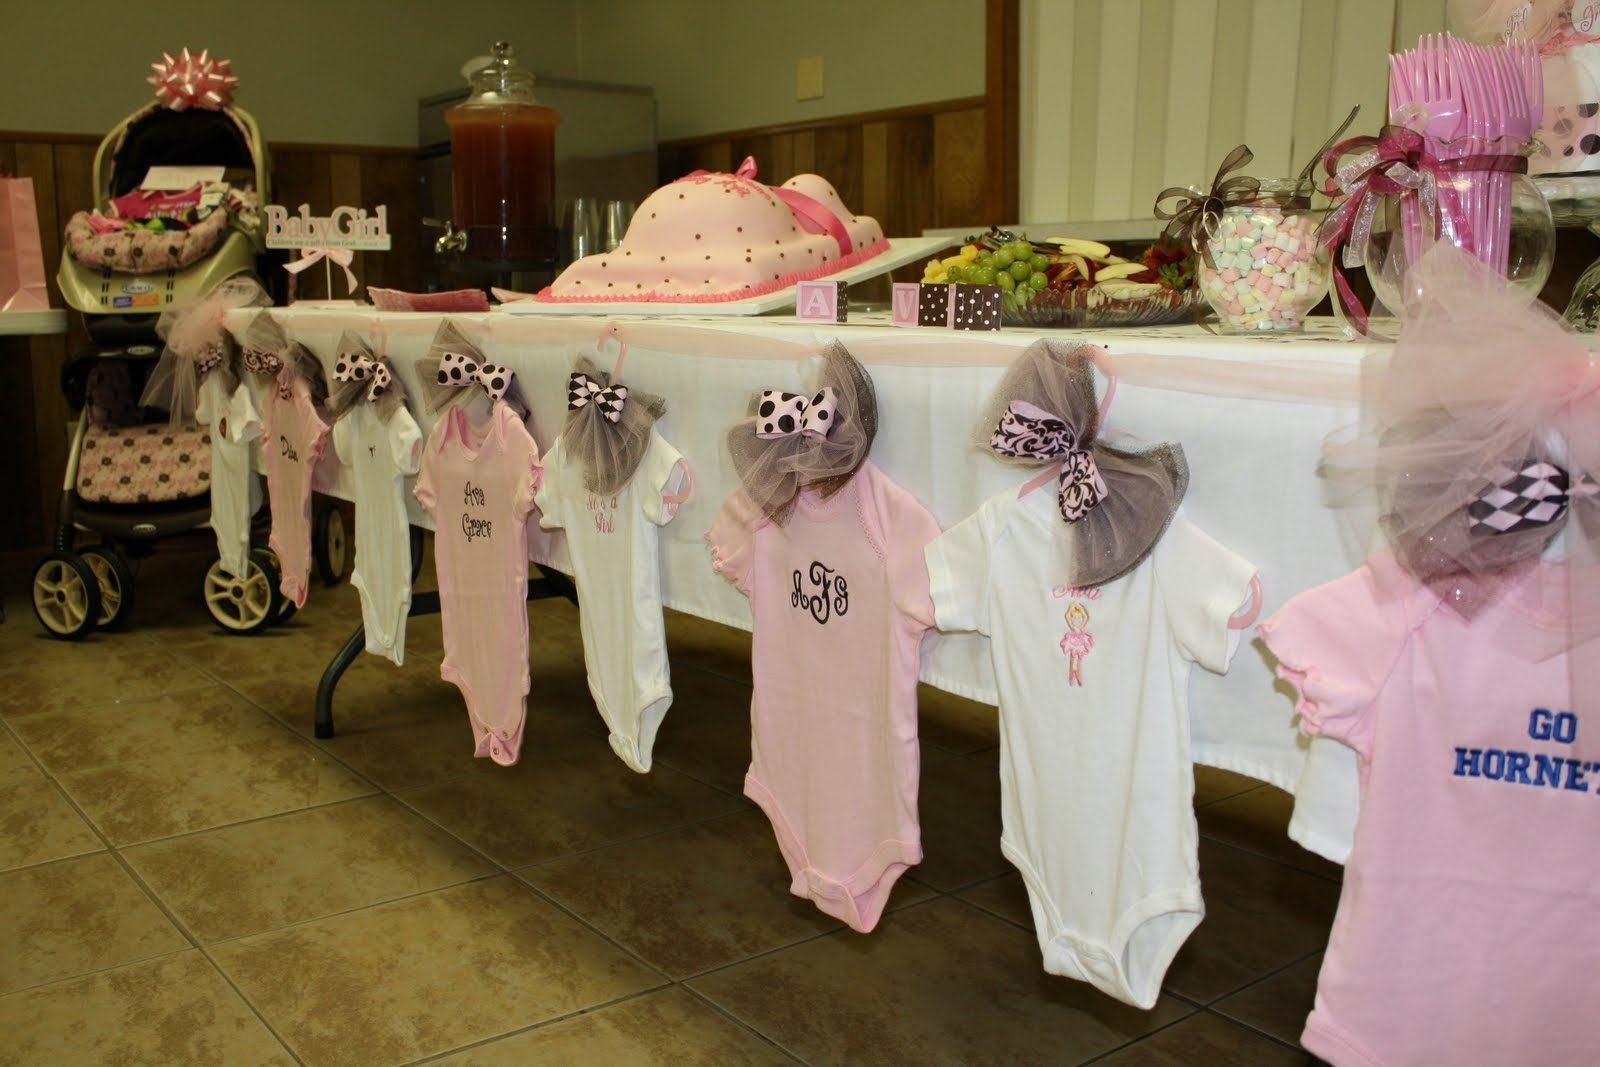 10 Nice Baby Shower Ideas For Girls Decorations ideas pink andrownaby shower decoration tea party favors girl themes